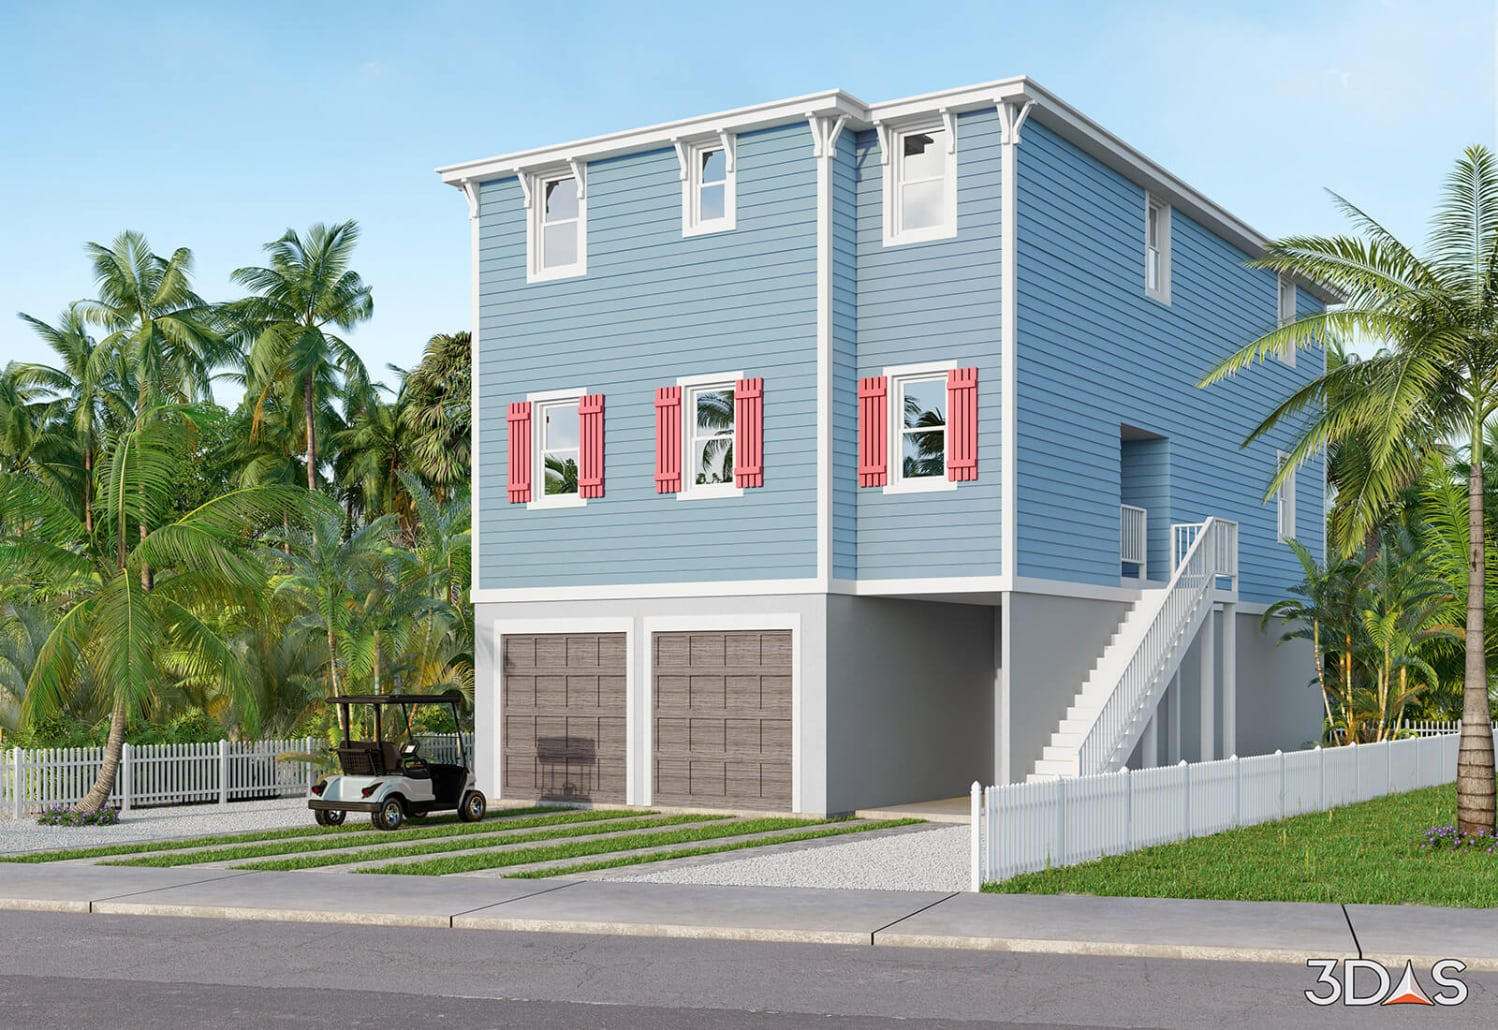 Bradenton Beach Residential 3D Rendering Exterior Perspective View